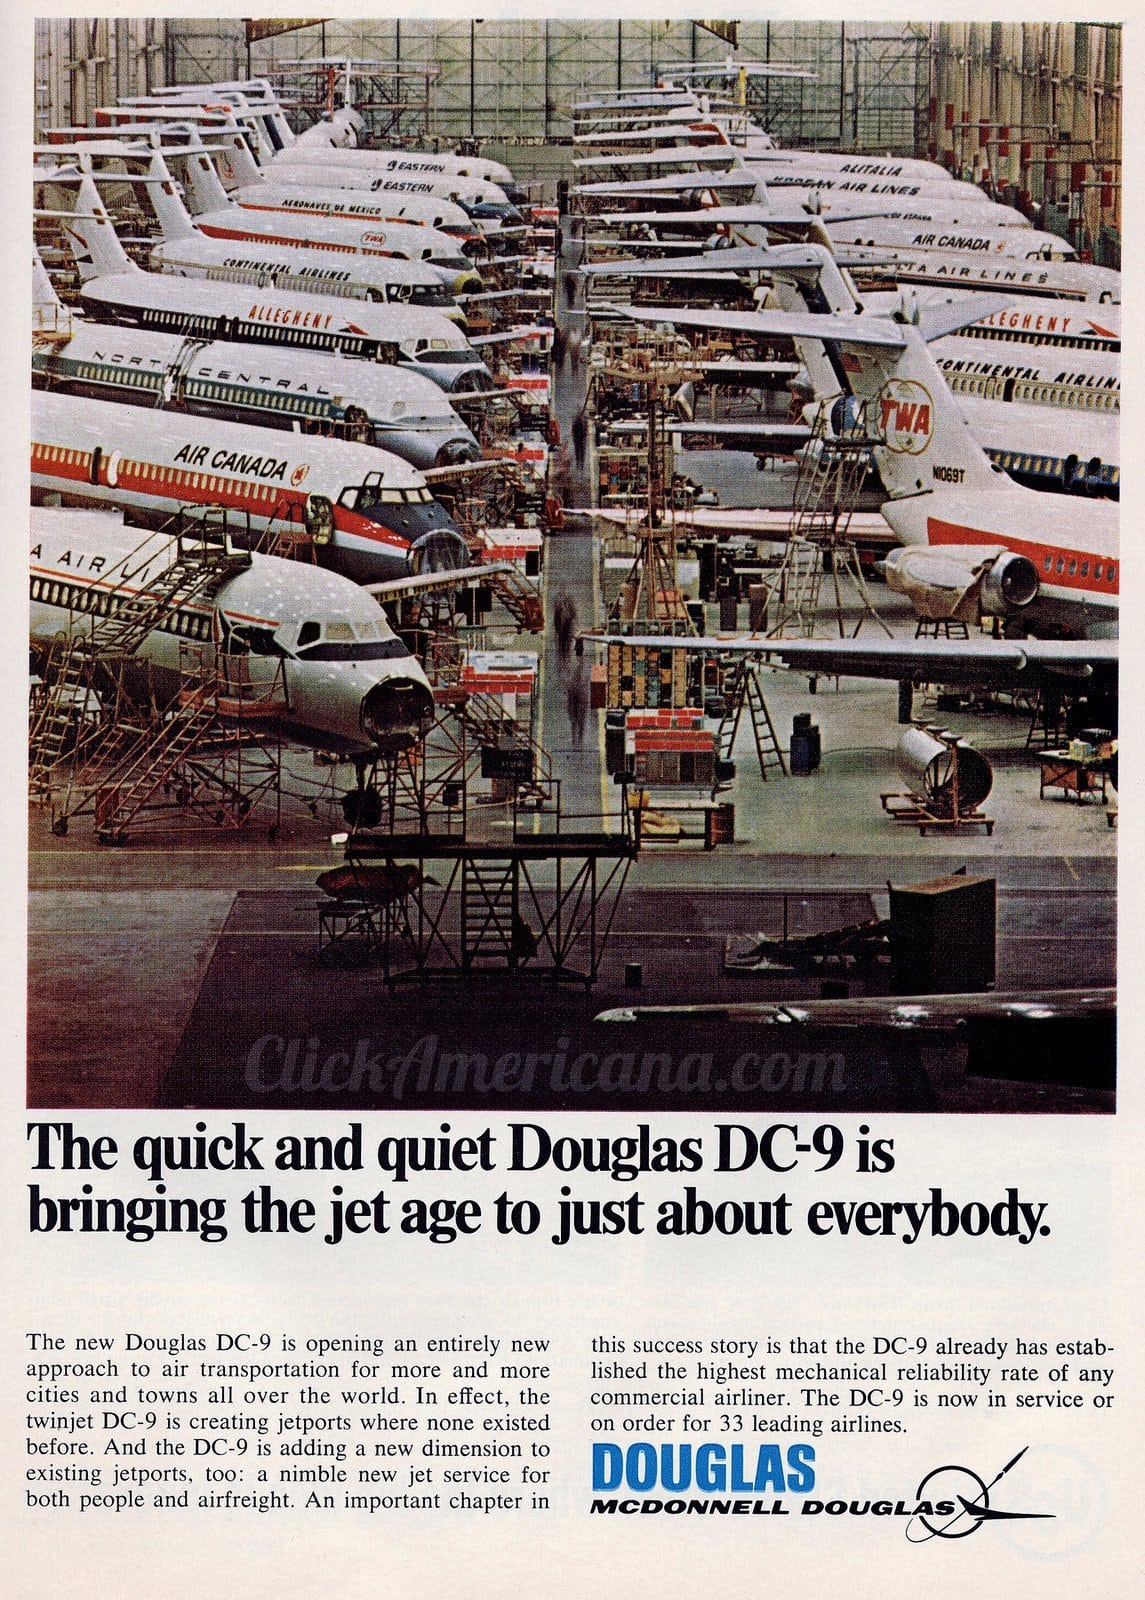 Douglas DC-9 livery in 1967